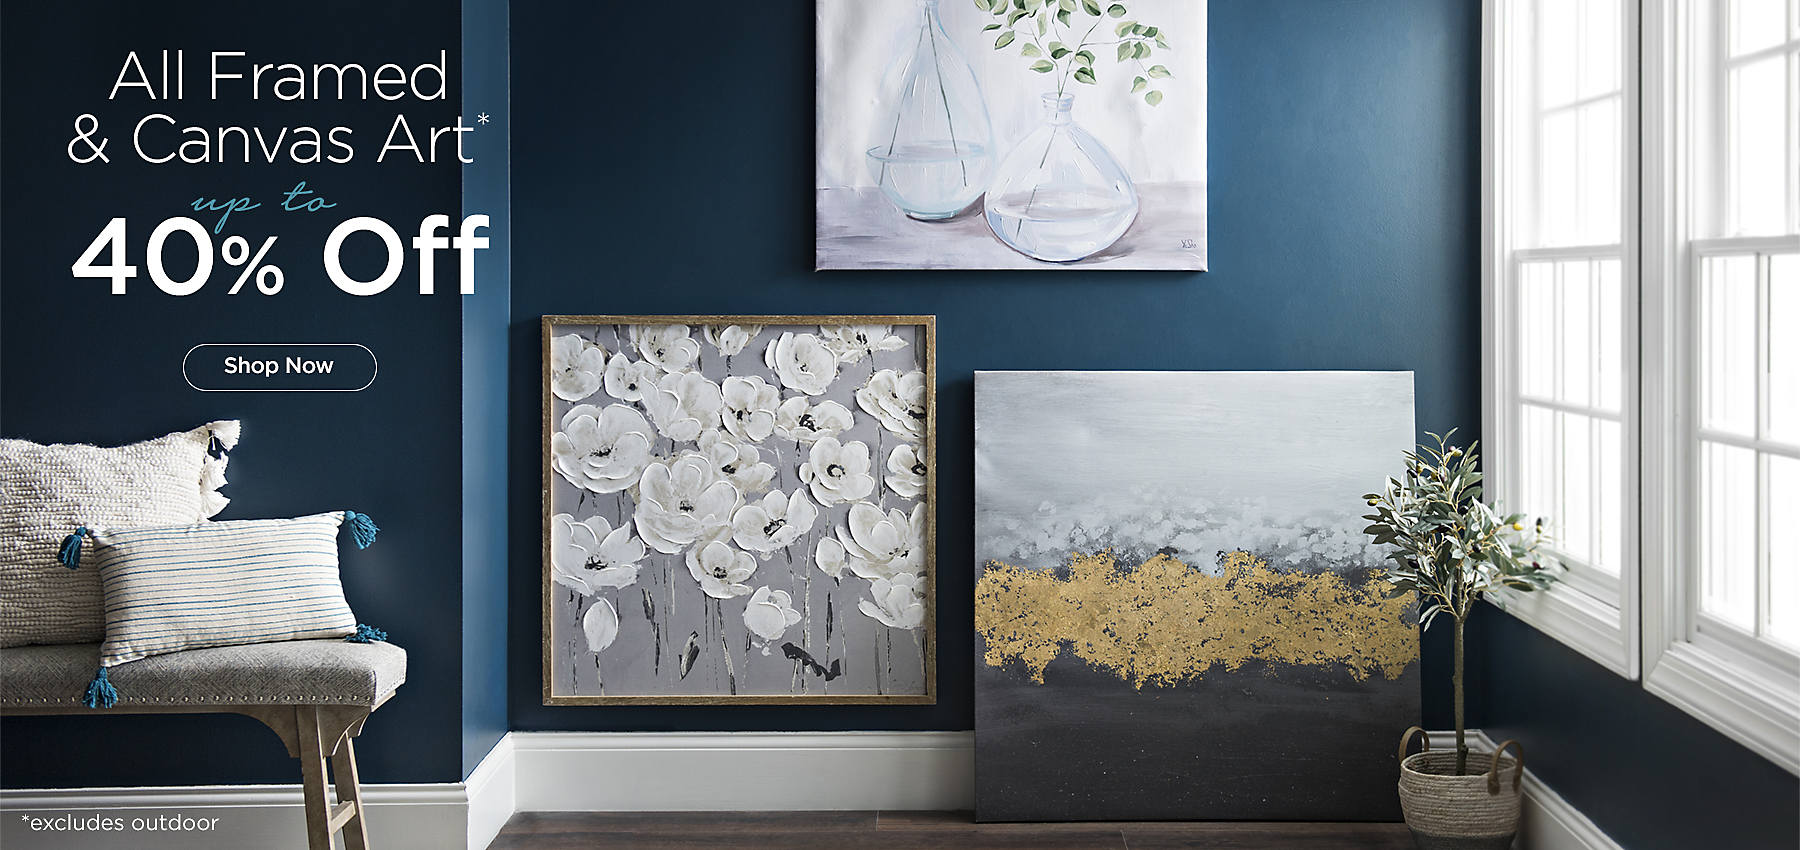 Limited Time Only - Up to 40% Off All Framed & Canvas Art - Excludes Outdoor